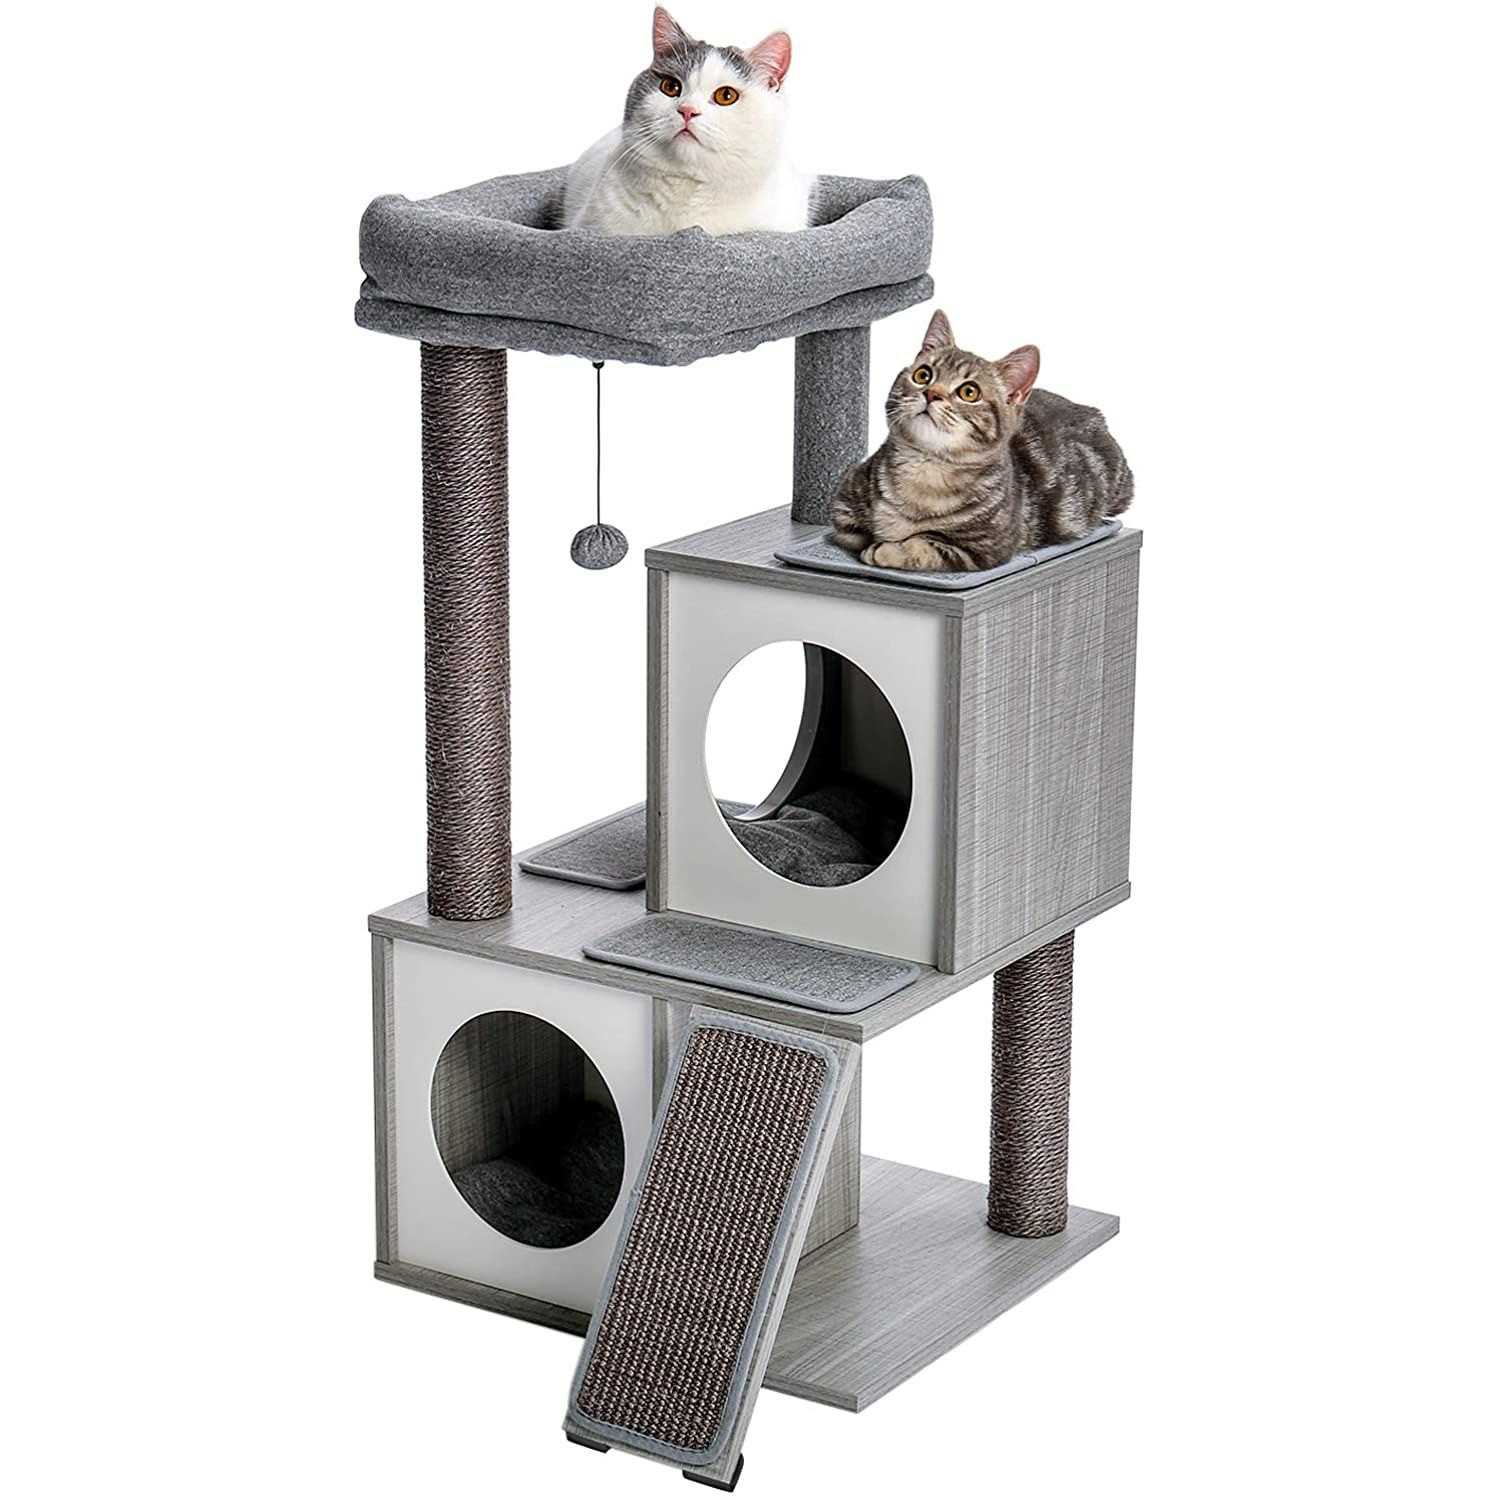 Pawz Road Cat Tree Luxury Cat Tower With Double Condos Spacious Perch Fully Wrapped Scratching Sisal Posts And Repl Luxury Cat Tree Luxury Cat Cat Tree House